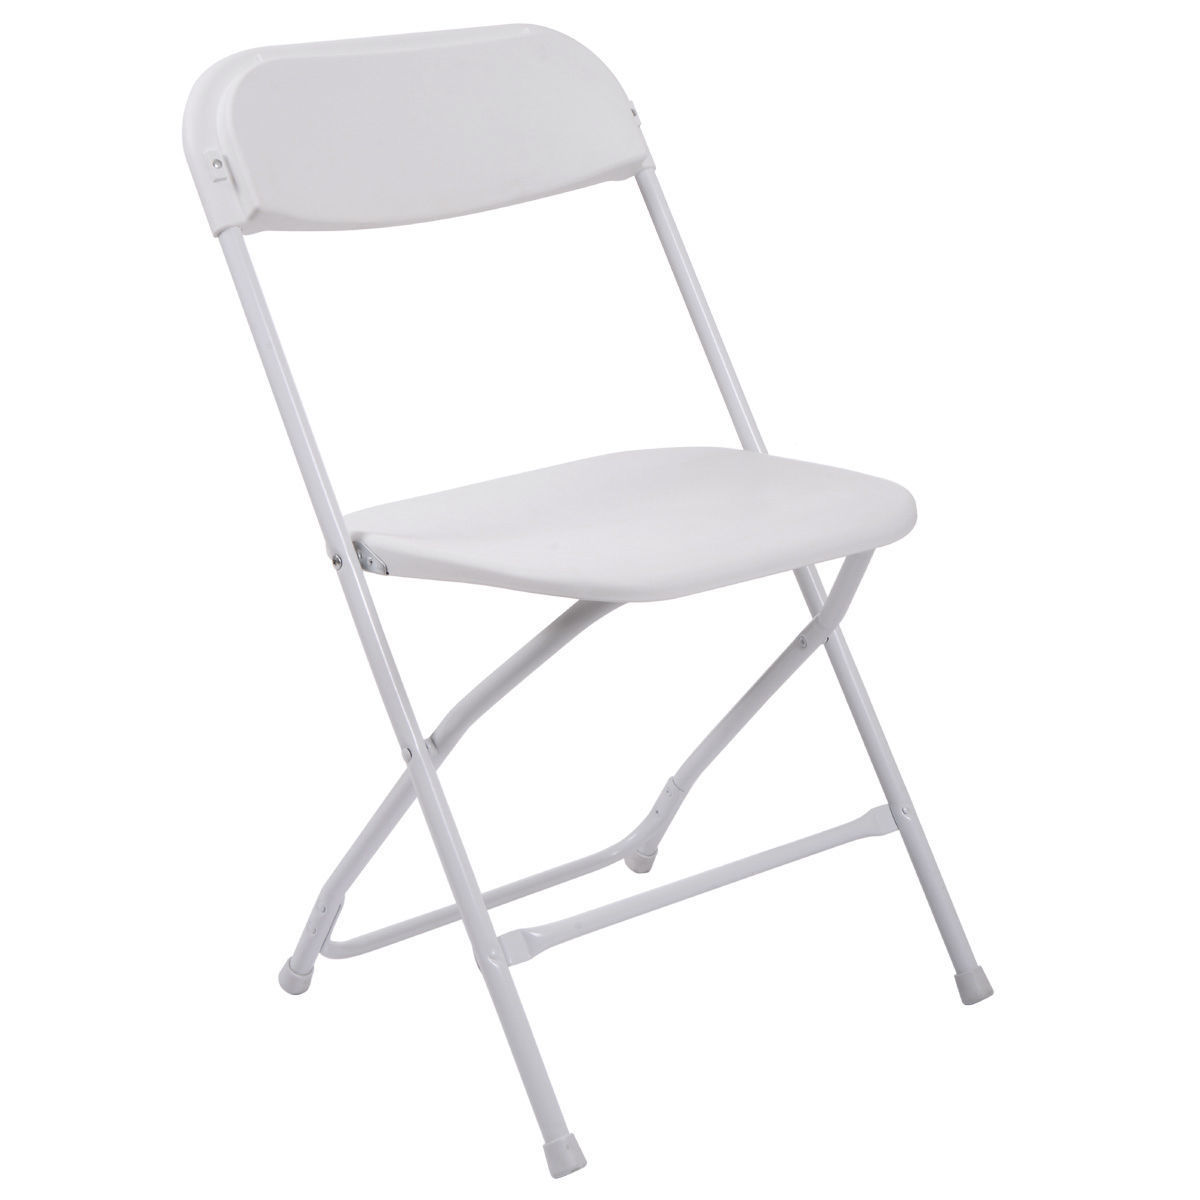 quality folding chairs walmart dining table and 5 white commercial stackable plastic chair